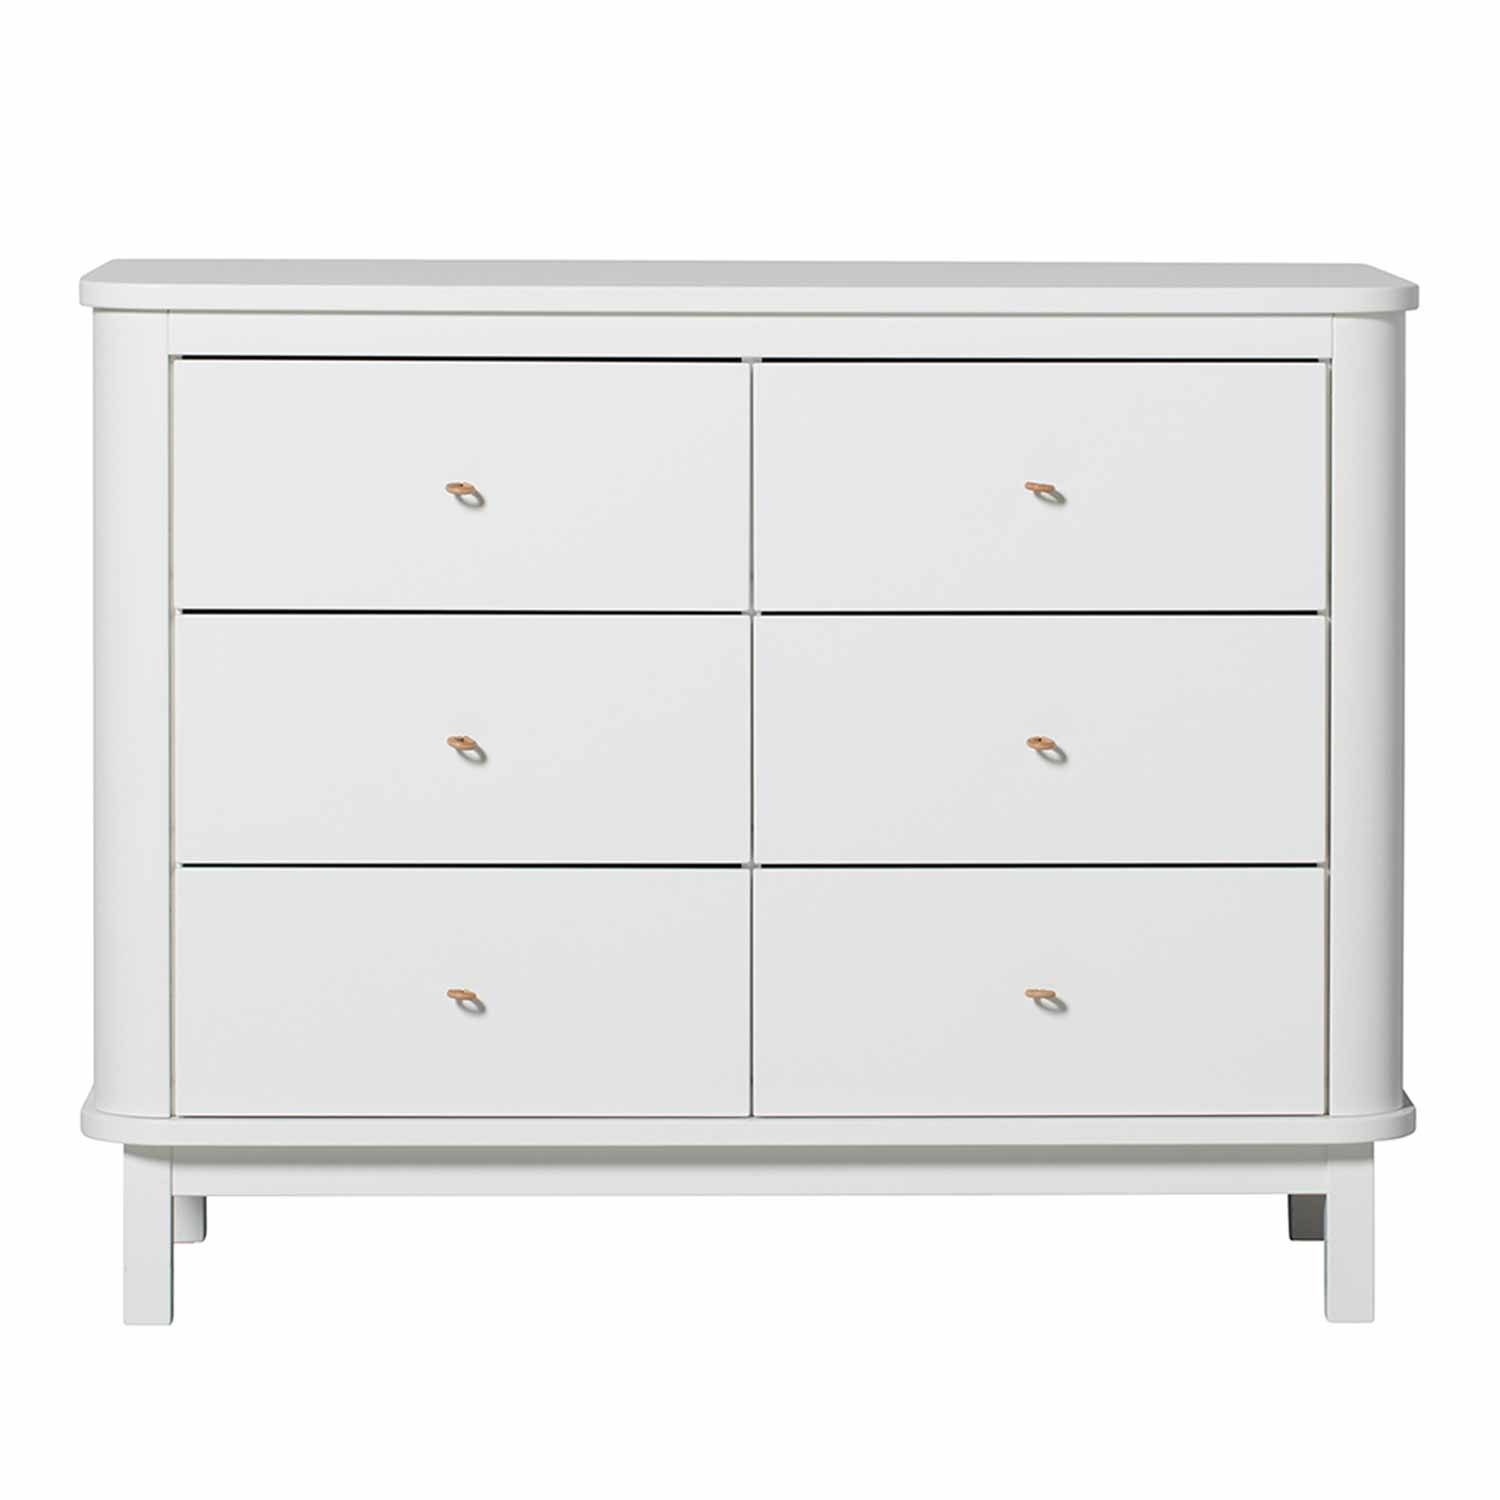 Oliver Furniture Wood Kommode 6 Schubladen Weiss